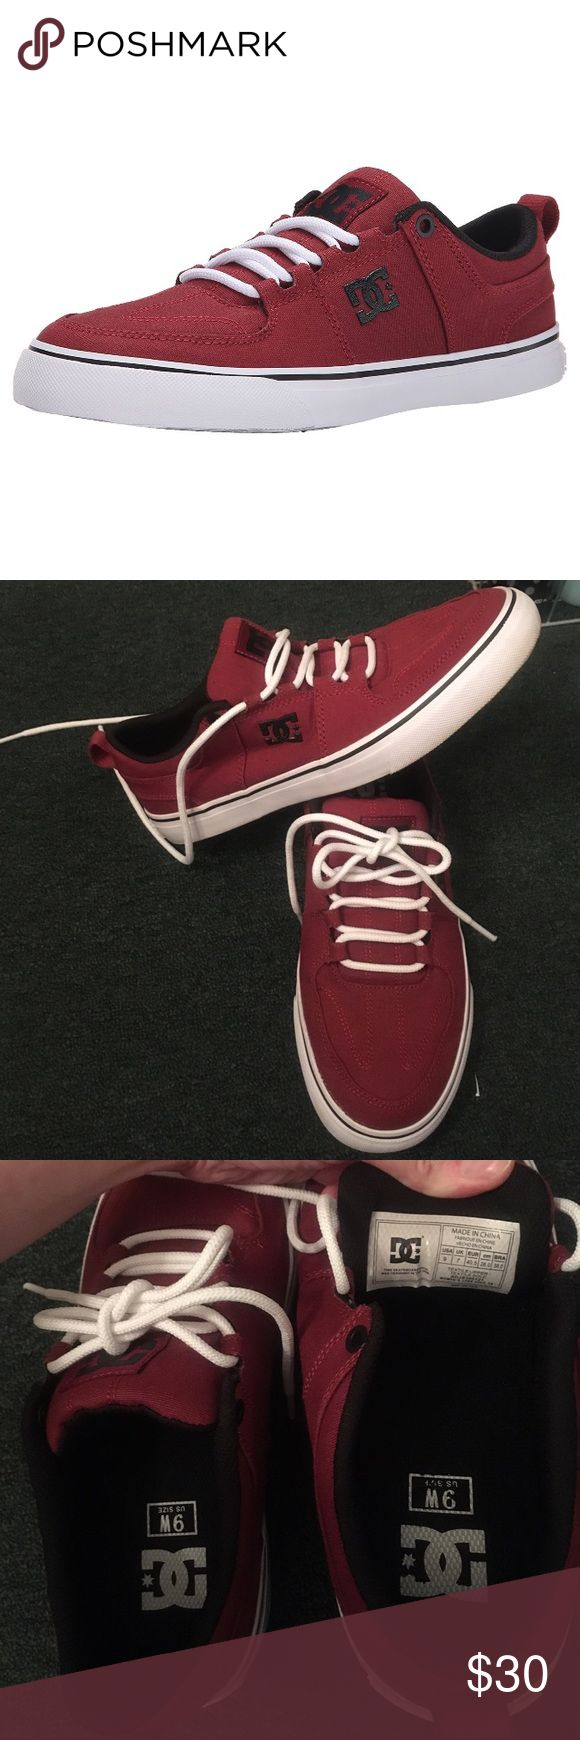 Women's DC shoes Women's Lynx Vulc TX skate shoe. Maroon and black with white soul and laces. These are a 9 WIDE. Worn once, and no signs of wear.  Price FIRM. Bundle to save. No trades, please!  DC Shoes Sneakers